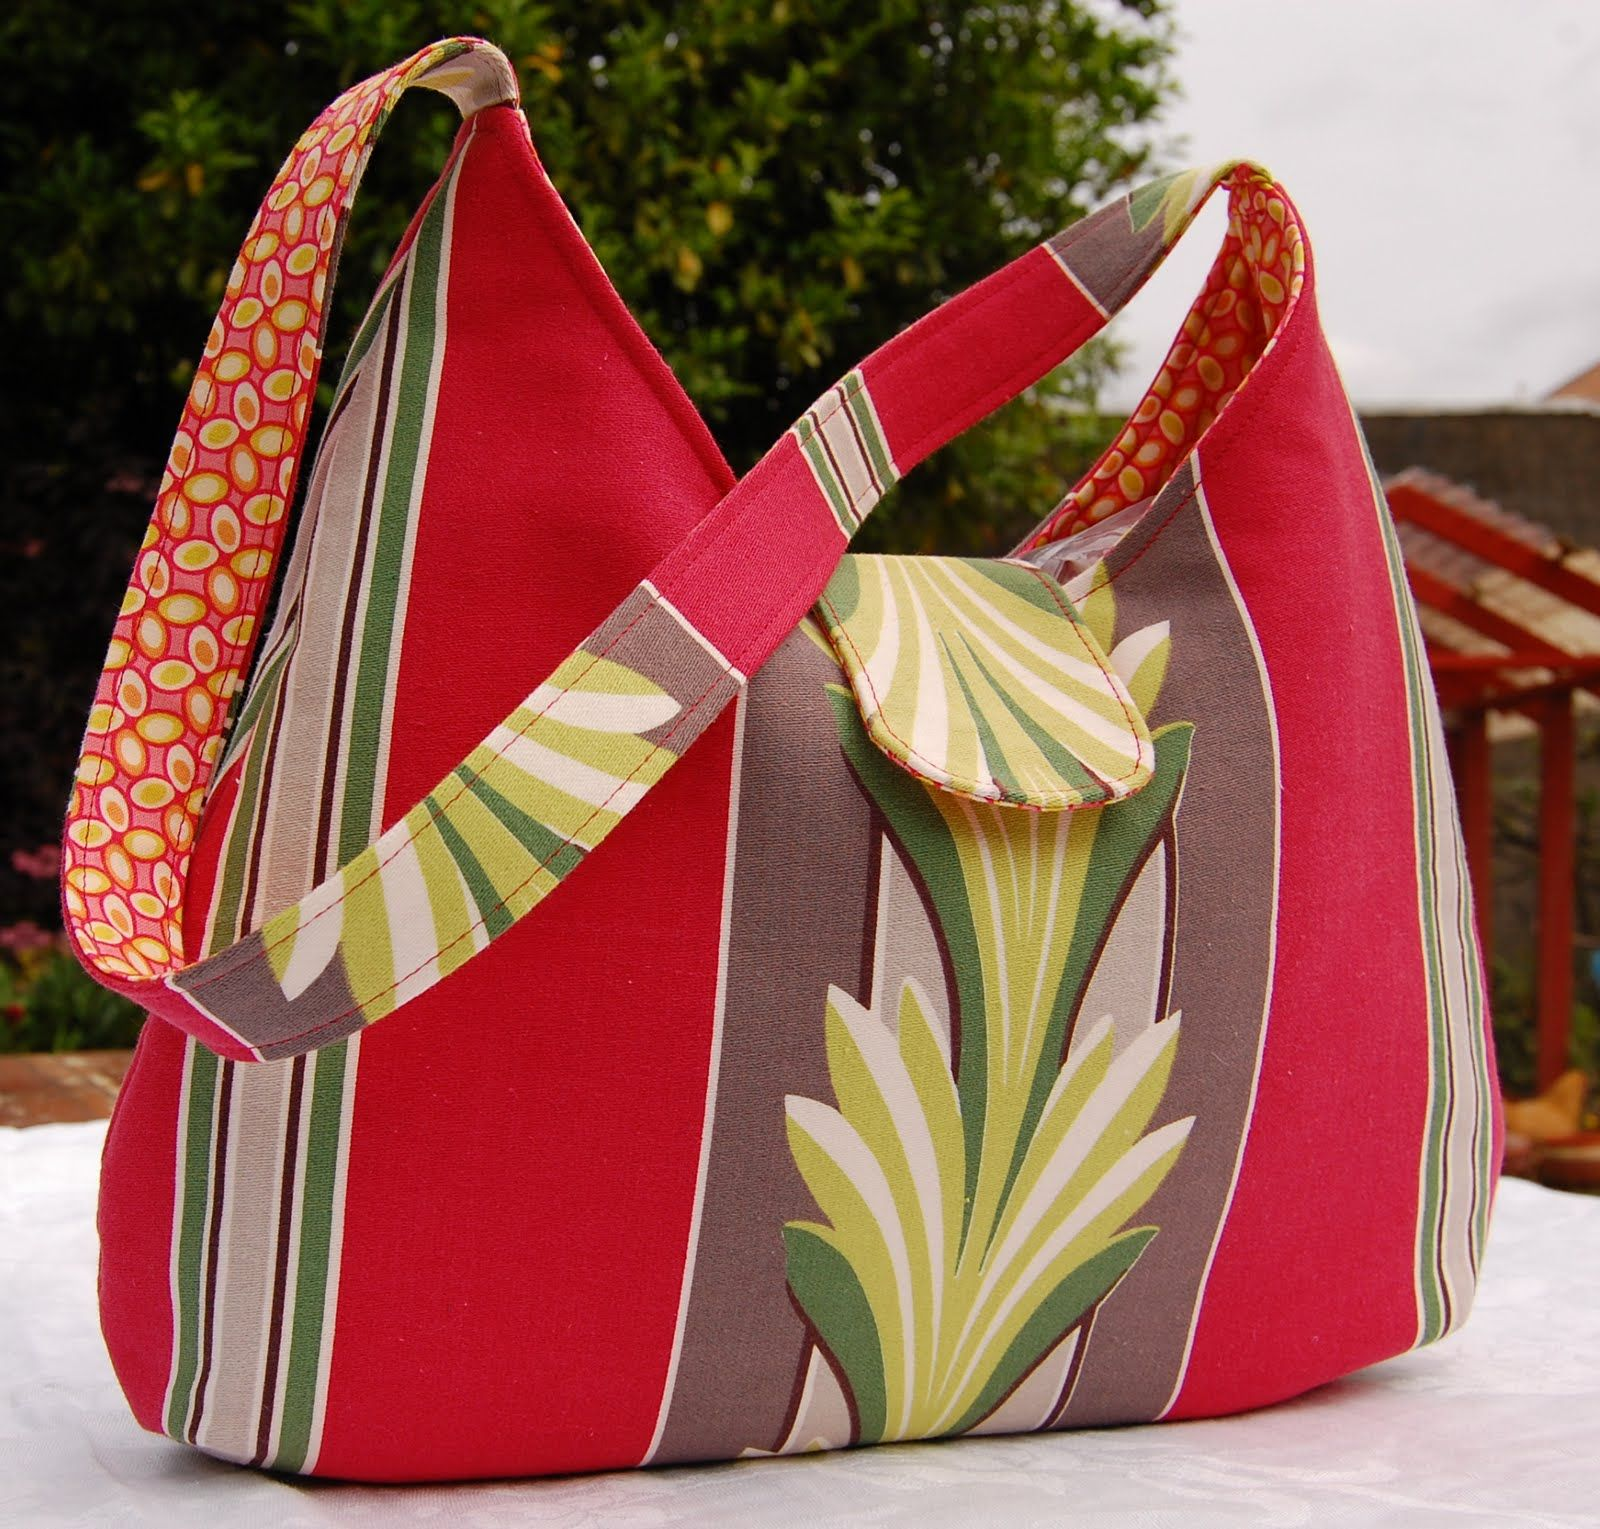 Free Fabric Handbag Patterns My Mom Asked Me To Use This Rare And Lovely Vintage Decor For